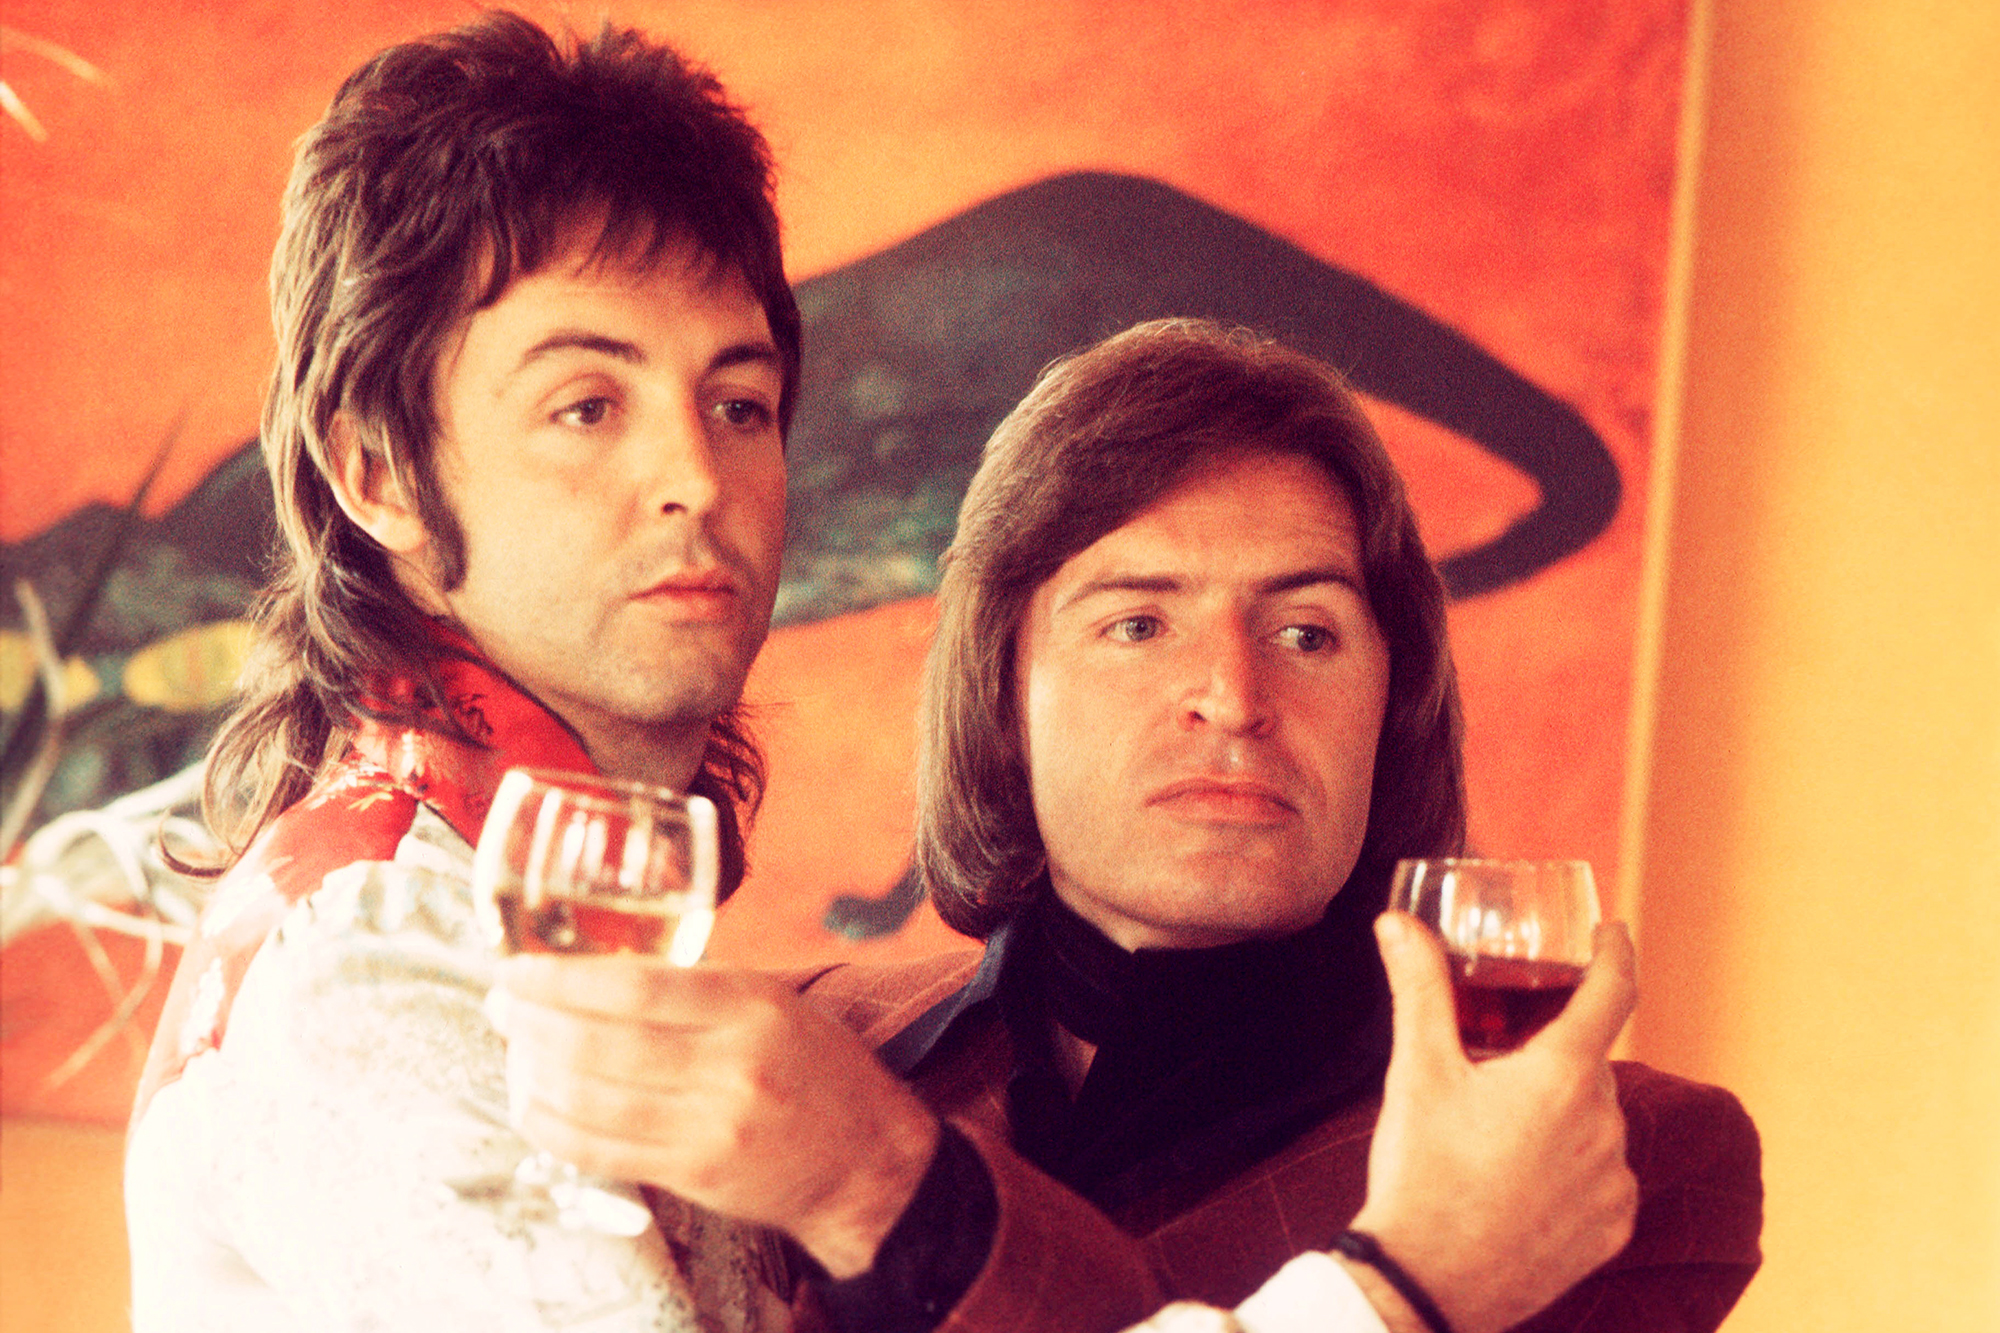 Paul McCartney during Wings era with his brother Mike McGear, portrait, London, 1974